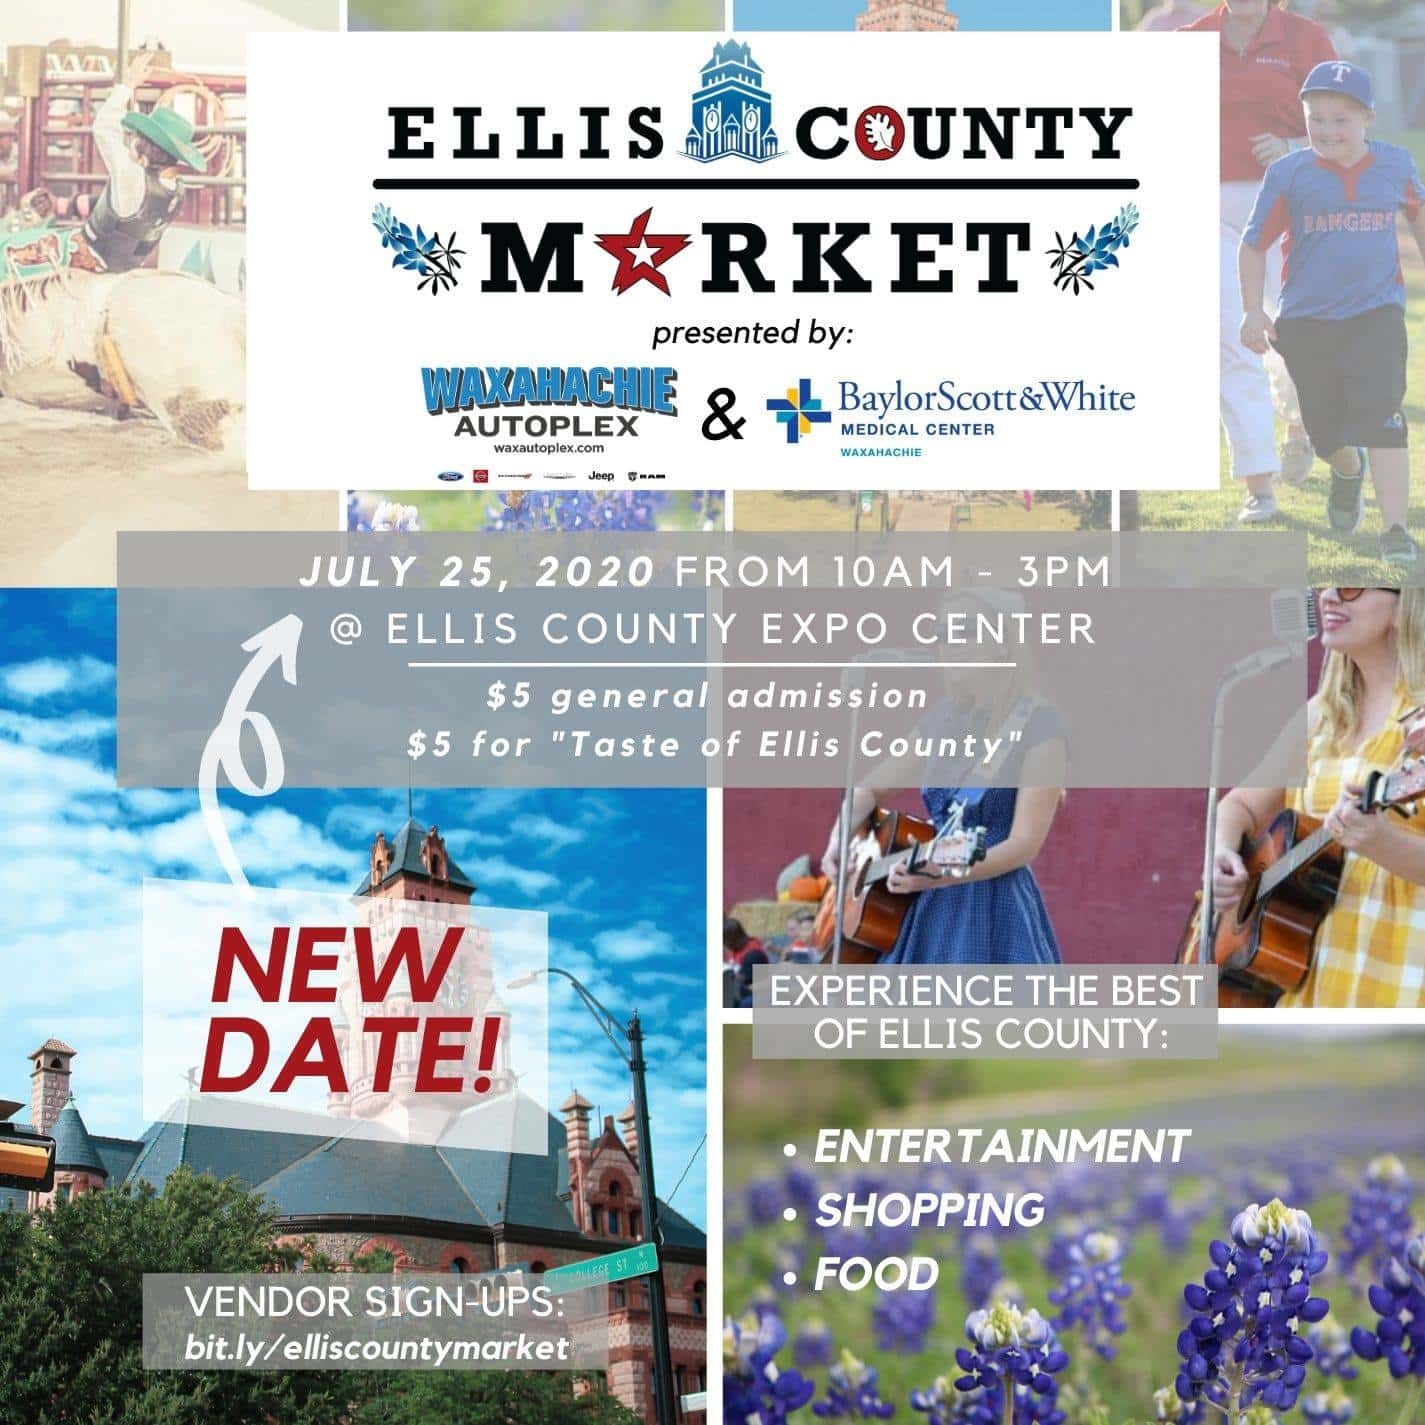 Ellis County Market postponed